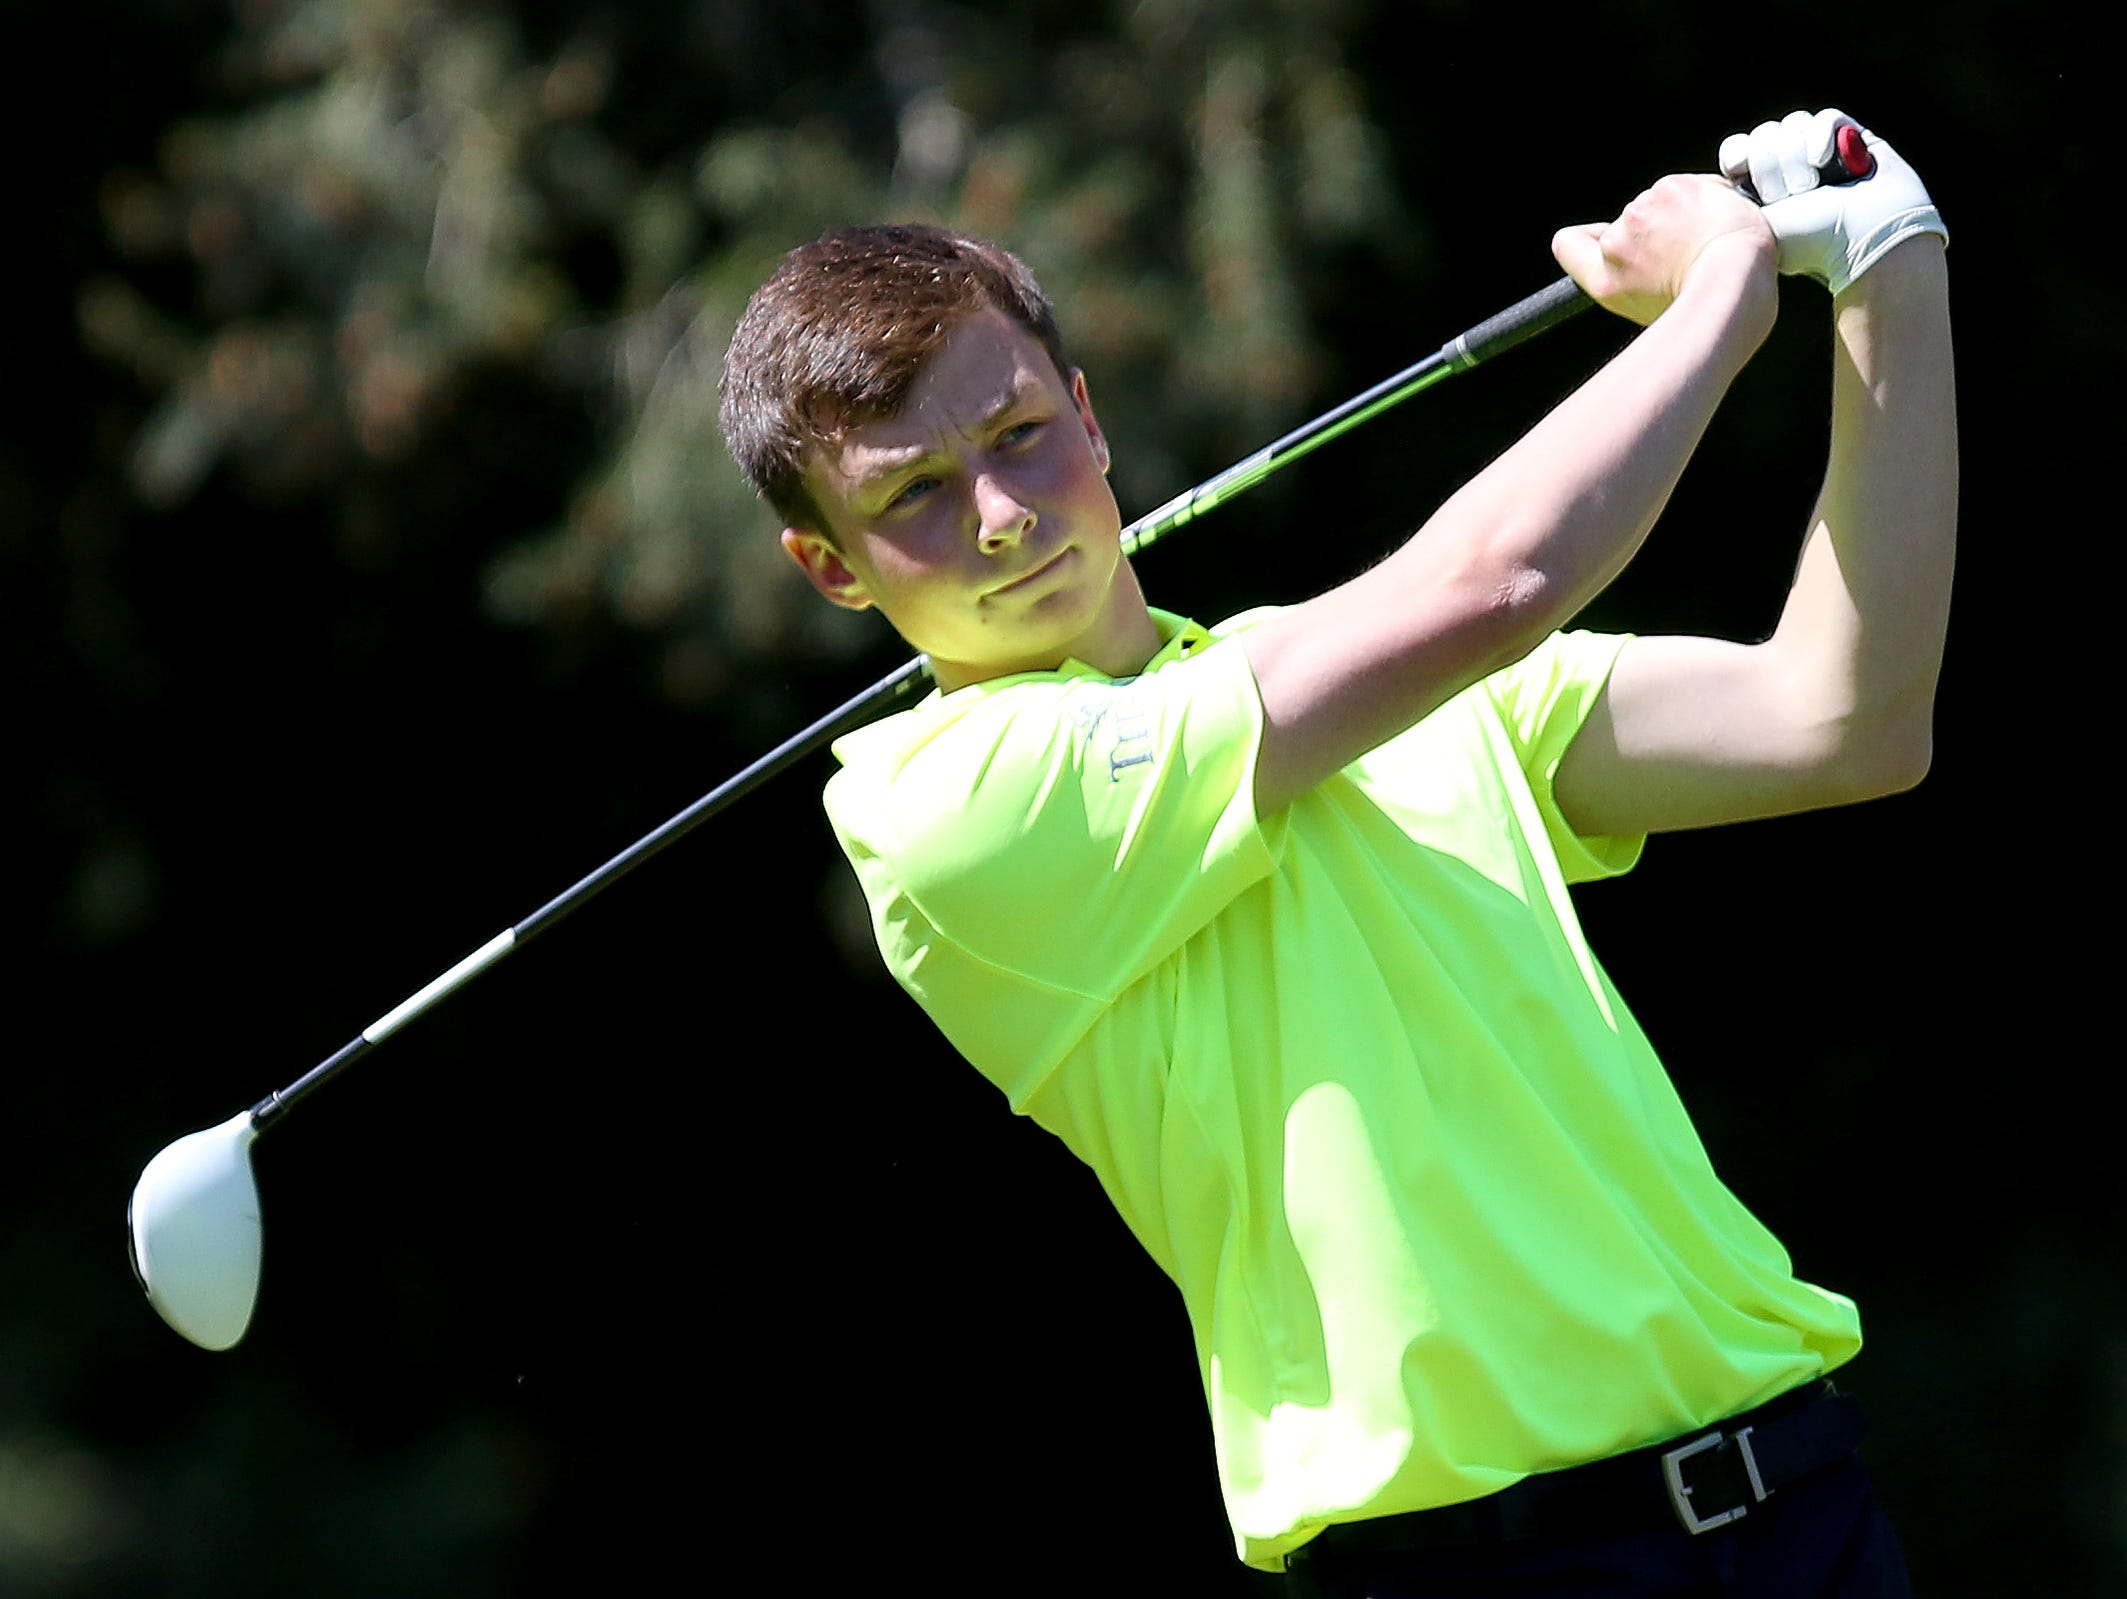 West Salem's Andrew Eyre competes in a Greater Valley Conference boy's golf match at the McNary Golf Club in Keizer on Monday, April 18, 2016.